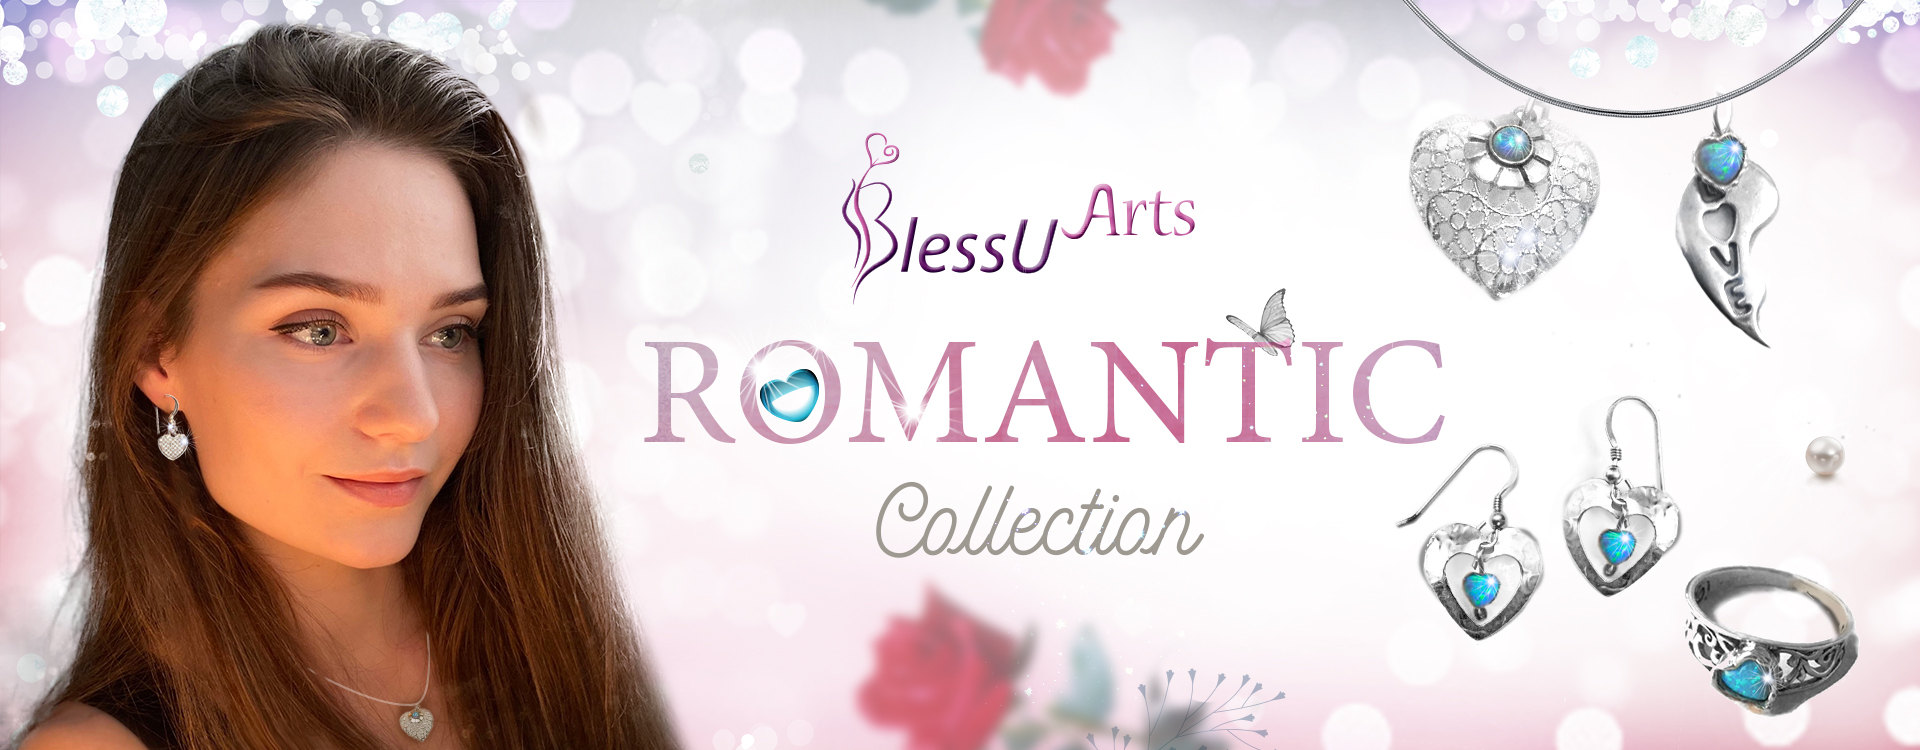 8-ROMANTIC-COLLECTION